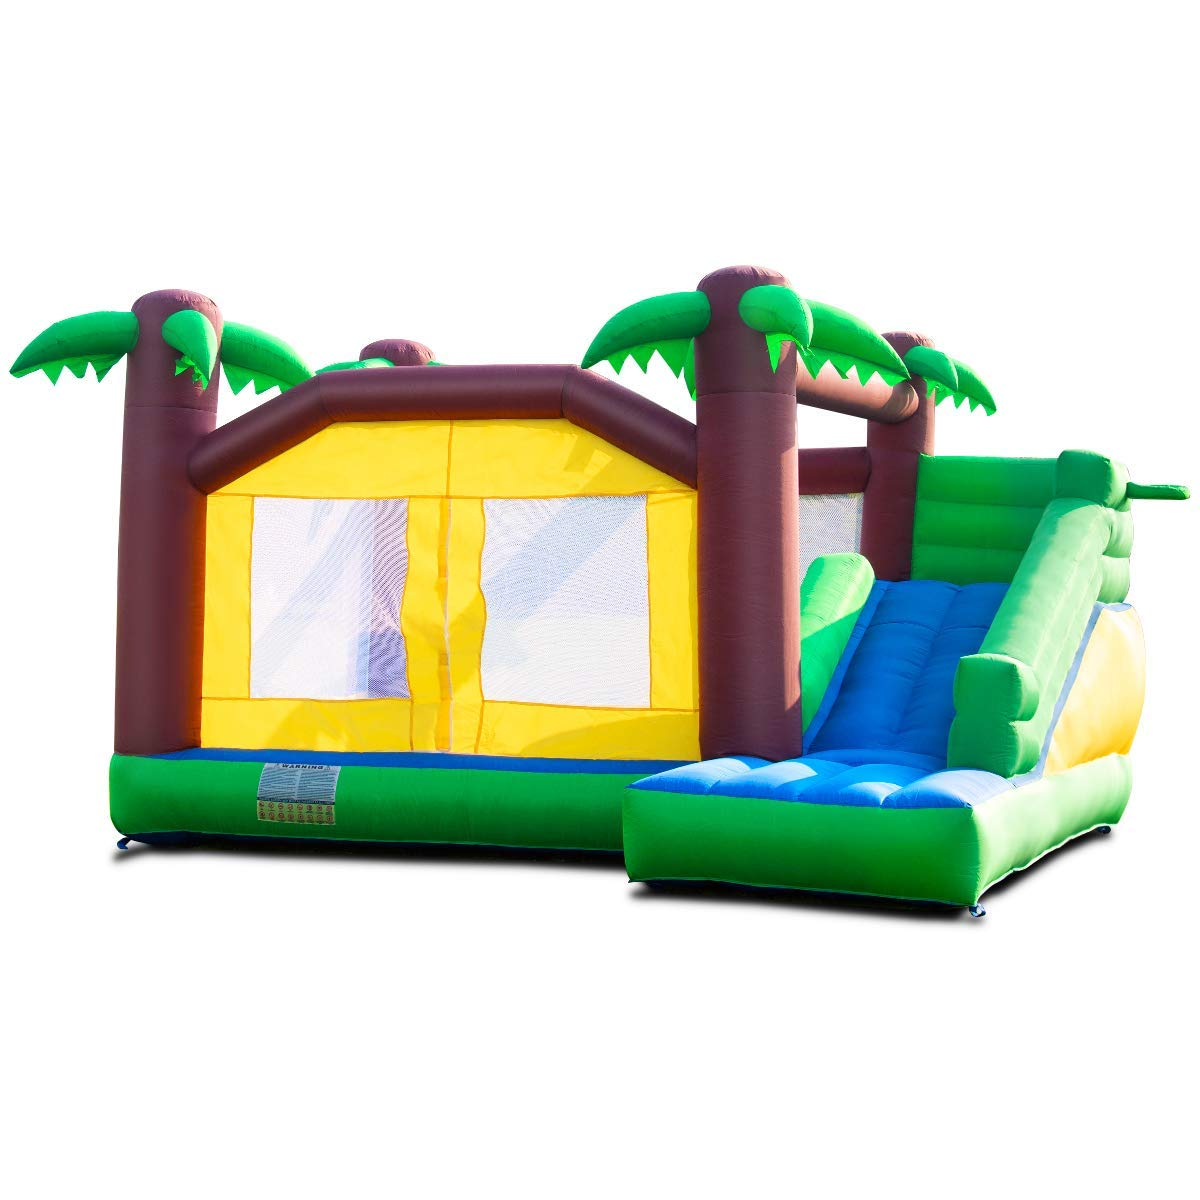 Costzon Inflatable Bounce House, Jungle Jump and Slide Bouncer w/Large Jumping Area, Long Slide, Including Carry Bag, Repairing Kit, Stakes (Without Blower) Green